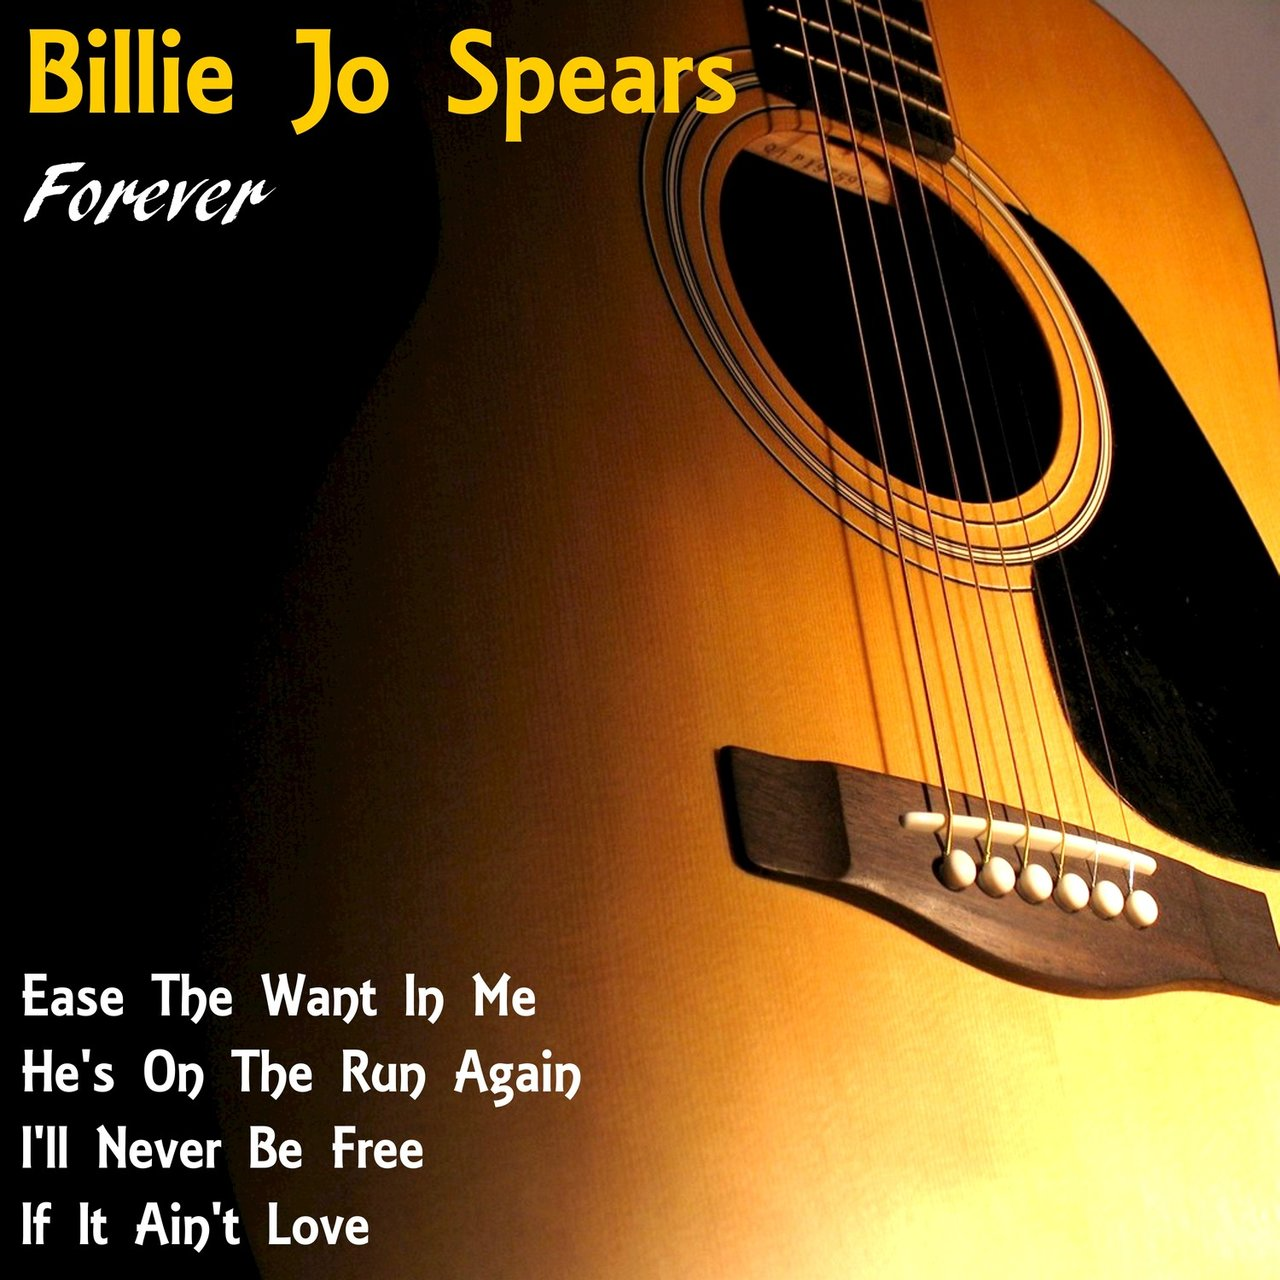 Billie Jo Spears Forever